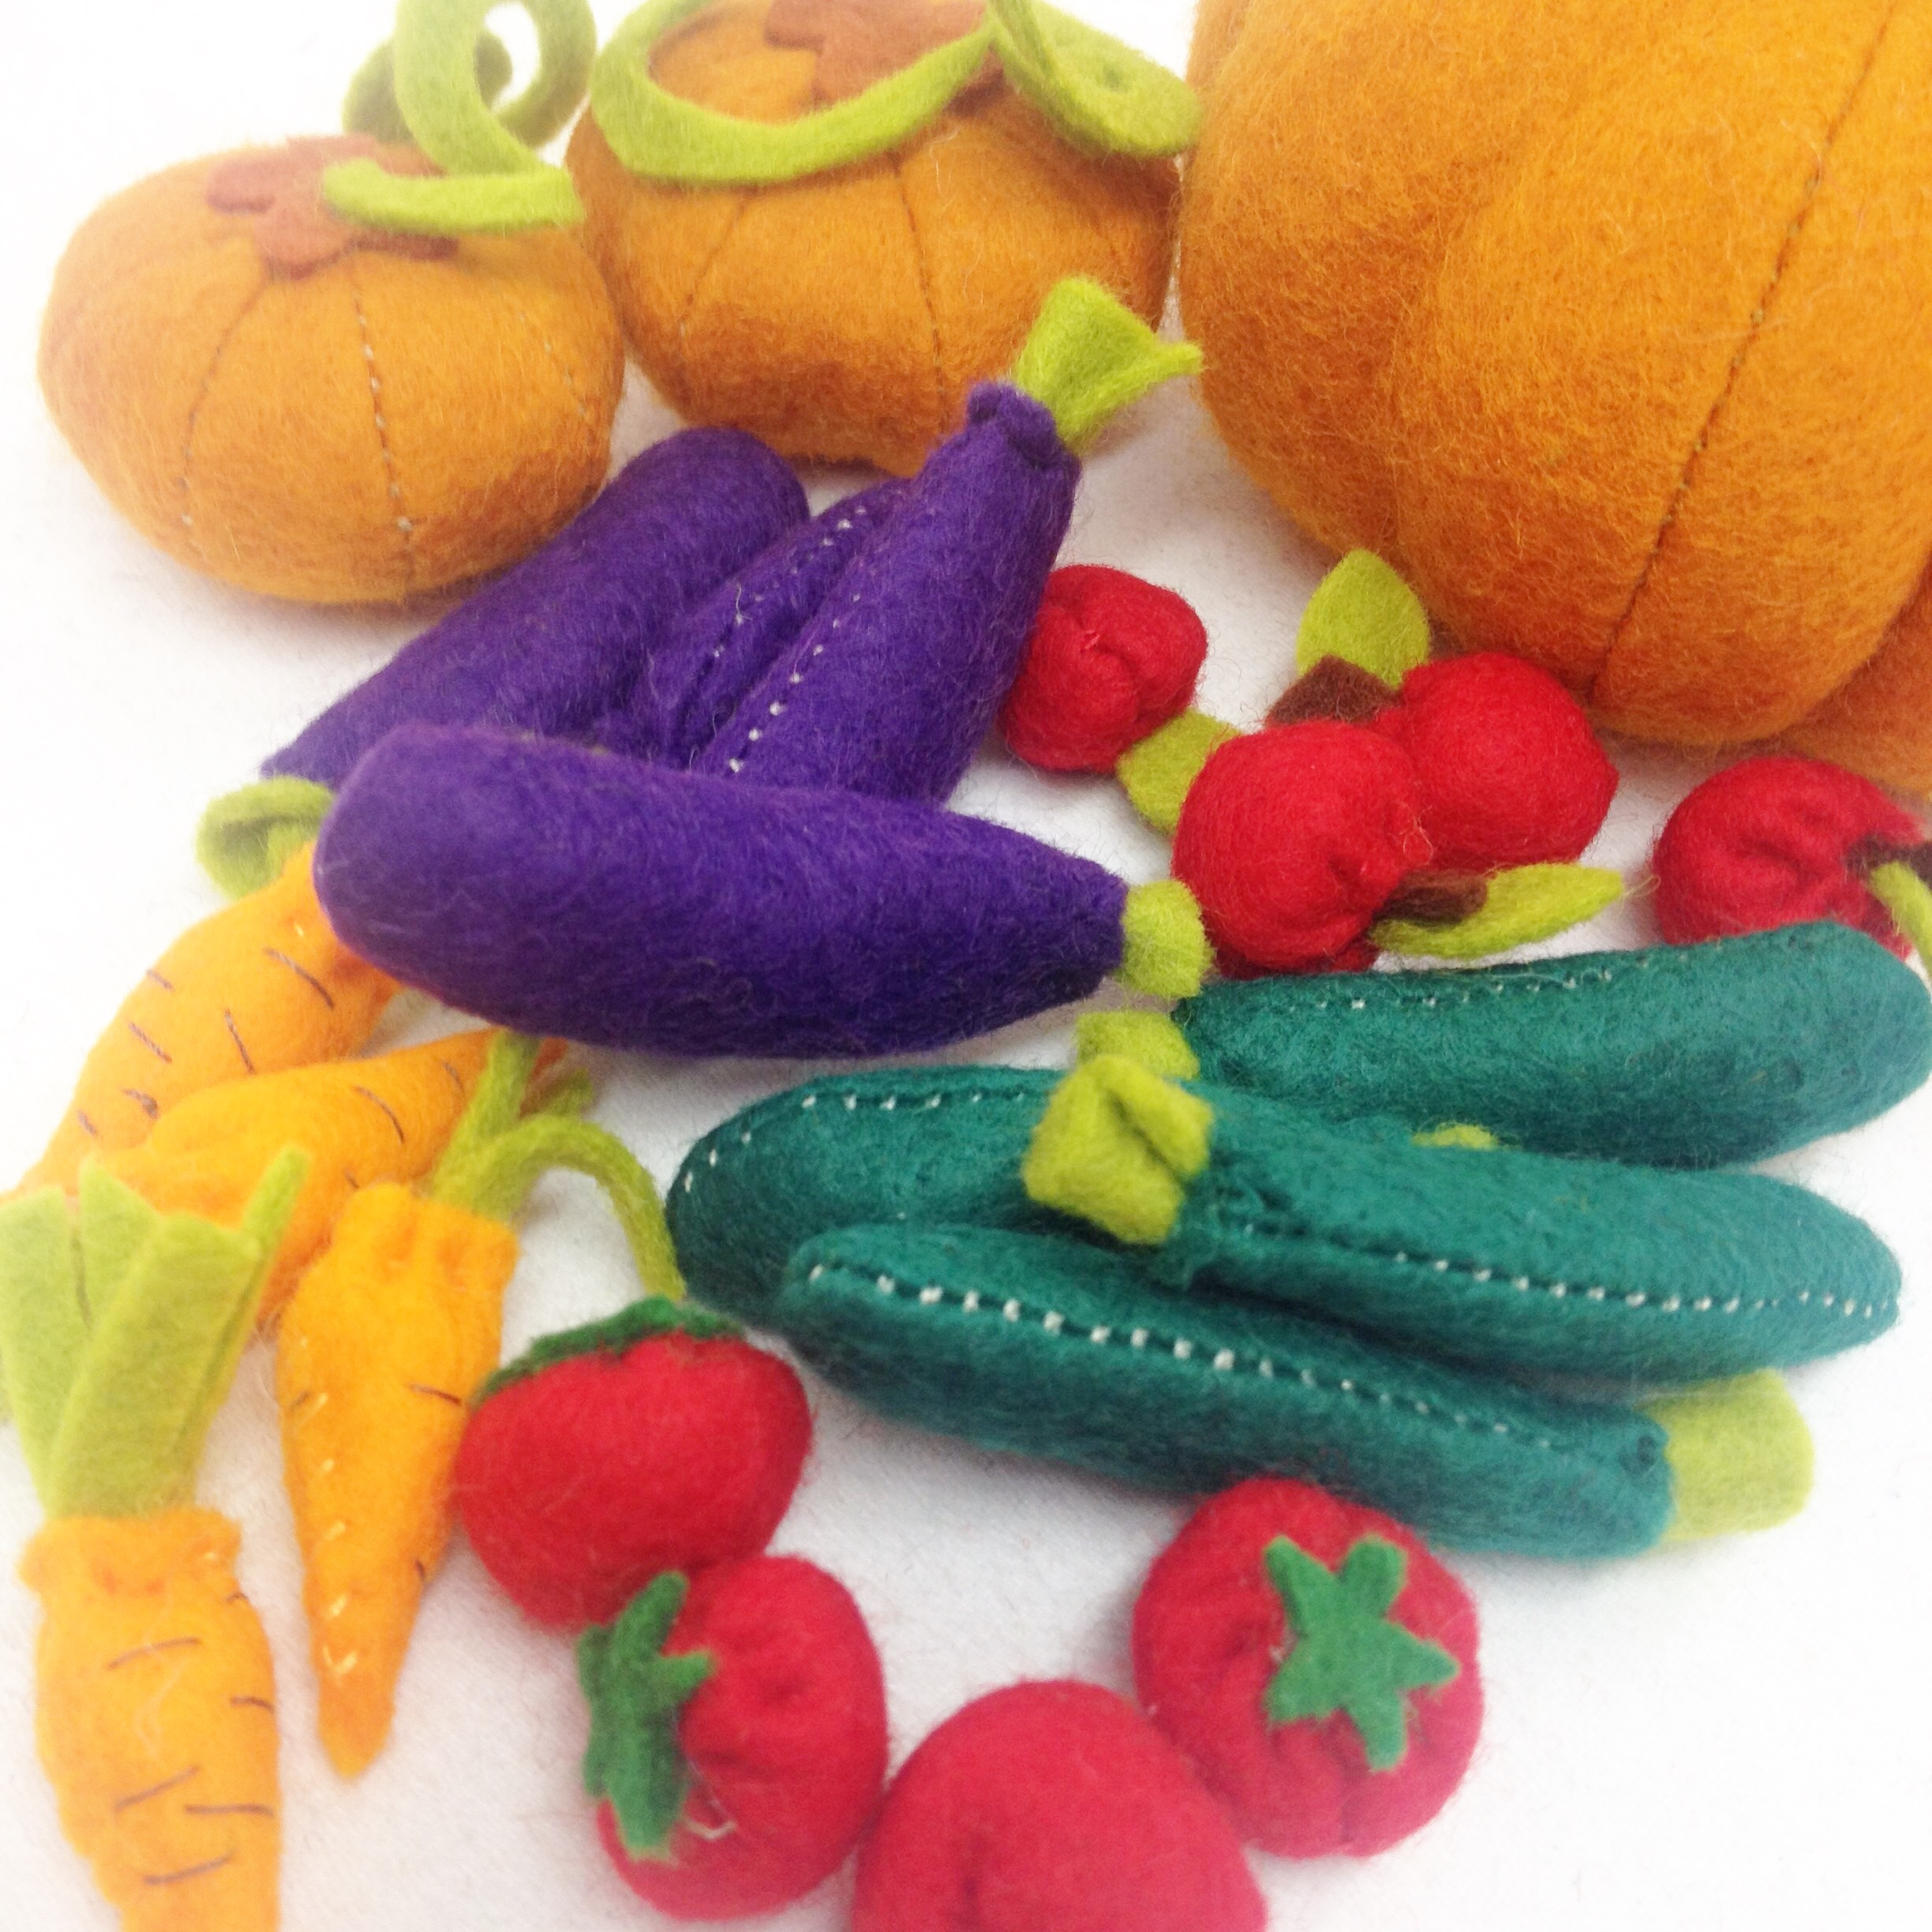 Felt play food vegetables by Laura Mirjami | Mirjami Design